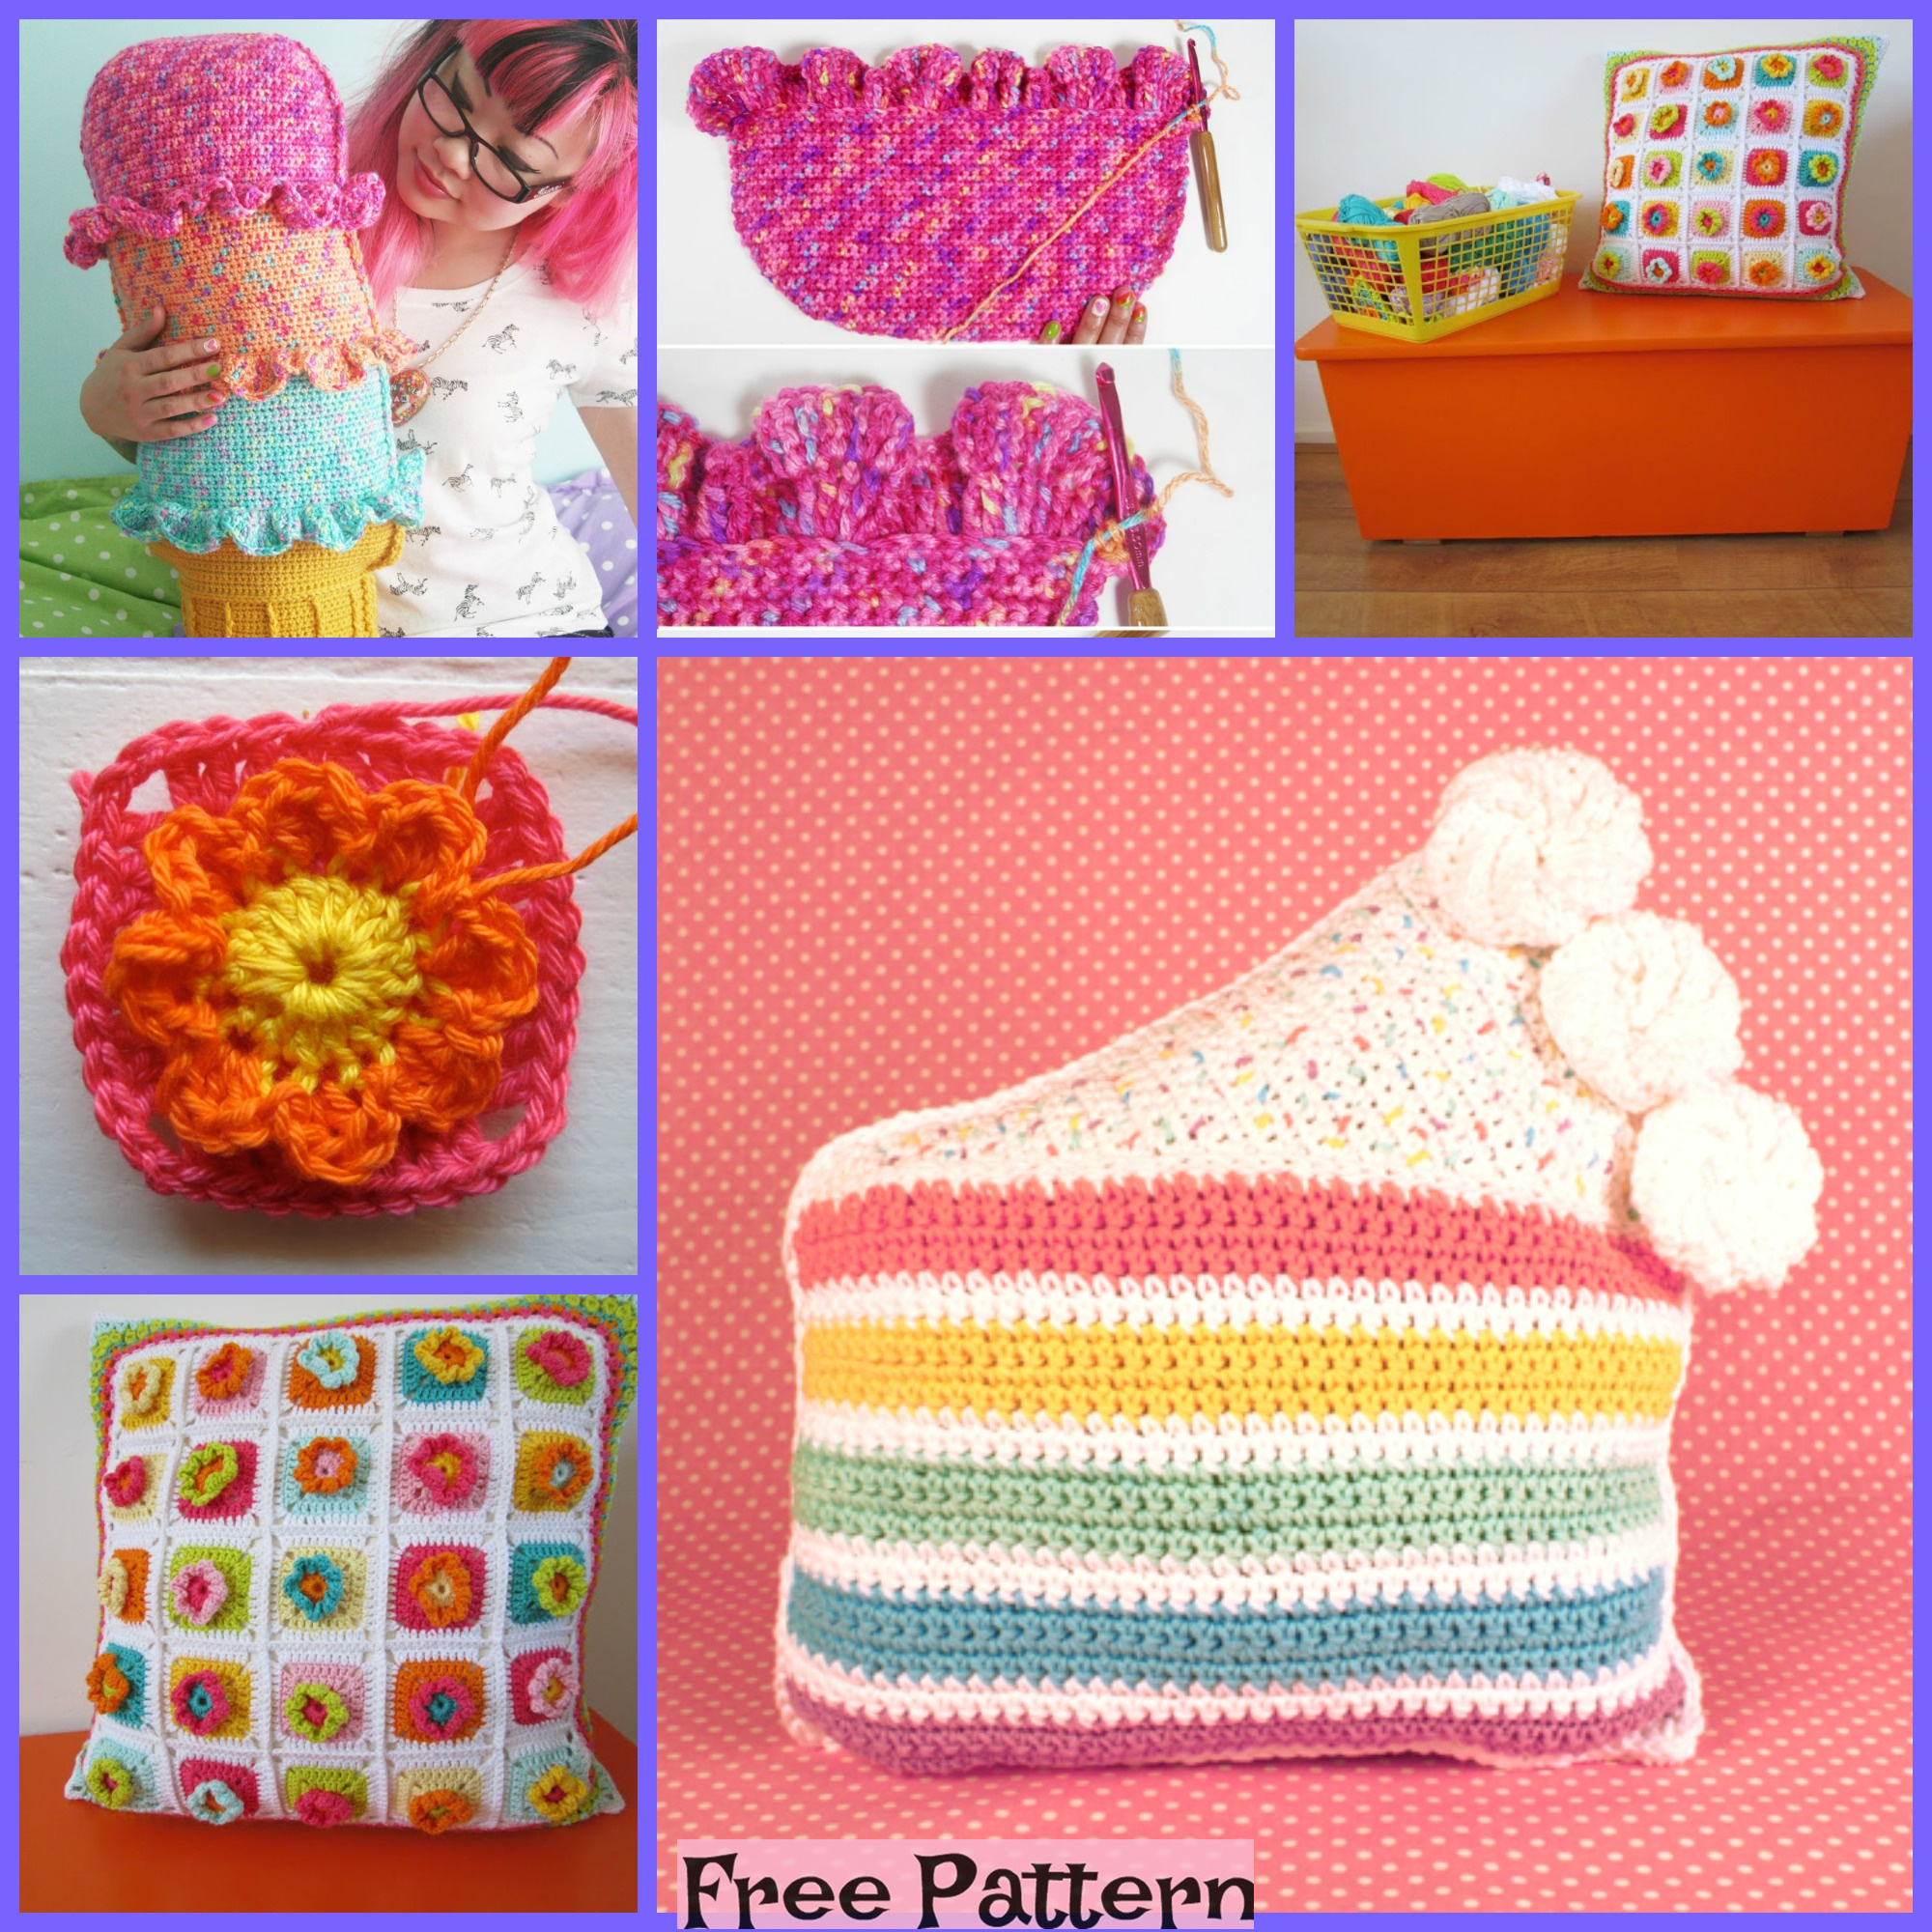 diy4ever- Crochet Rainbow Pillows - Free Patterns F2